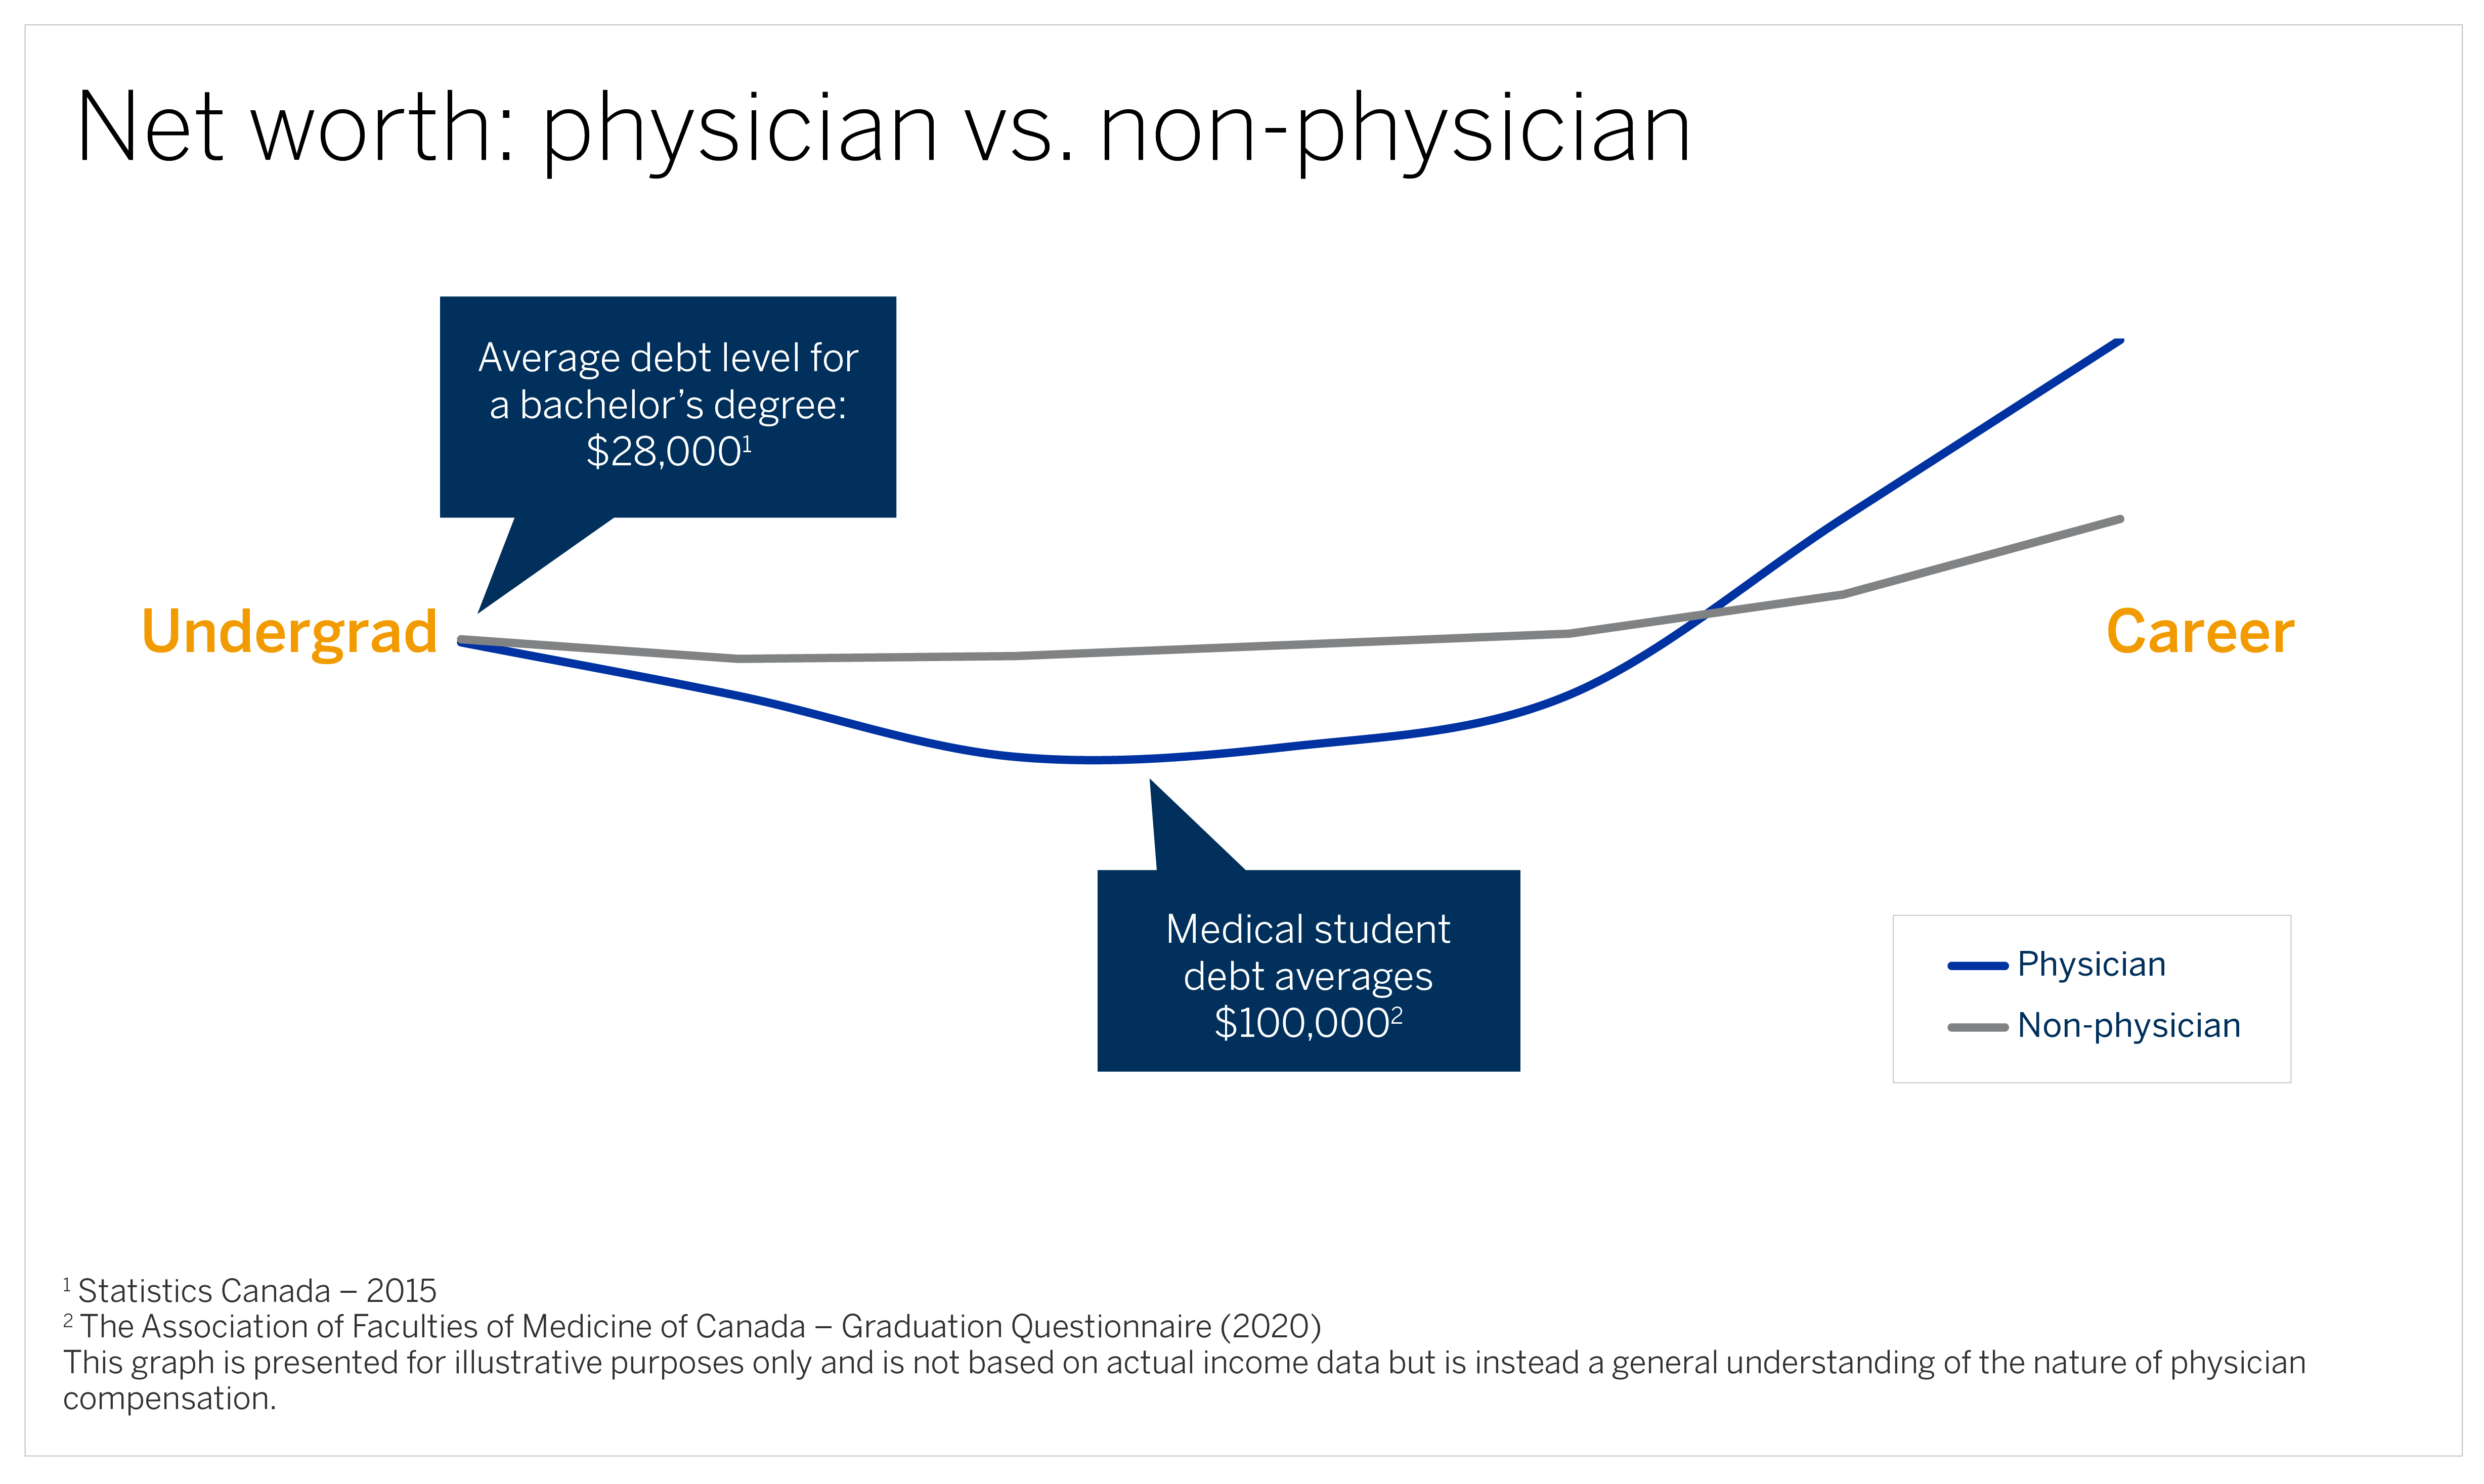 A line graph showing the net worth of physicians compared to non-physicians